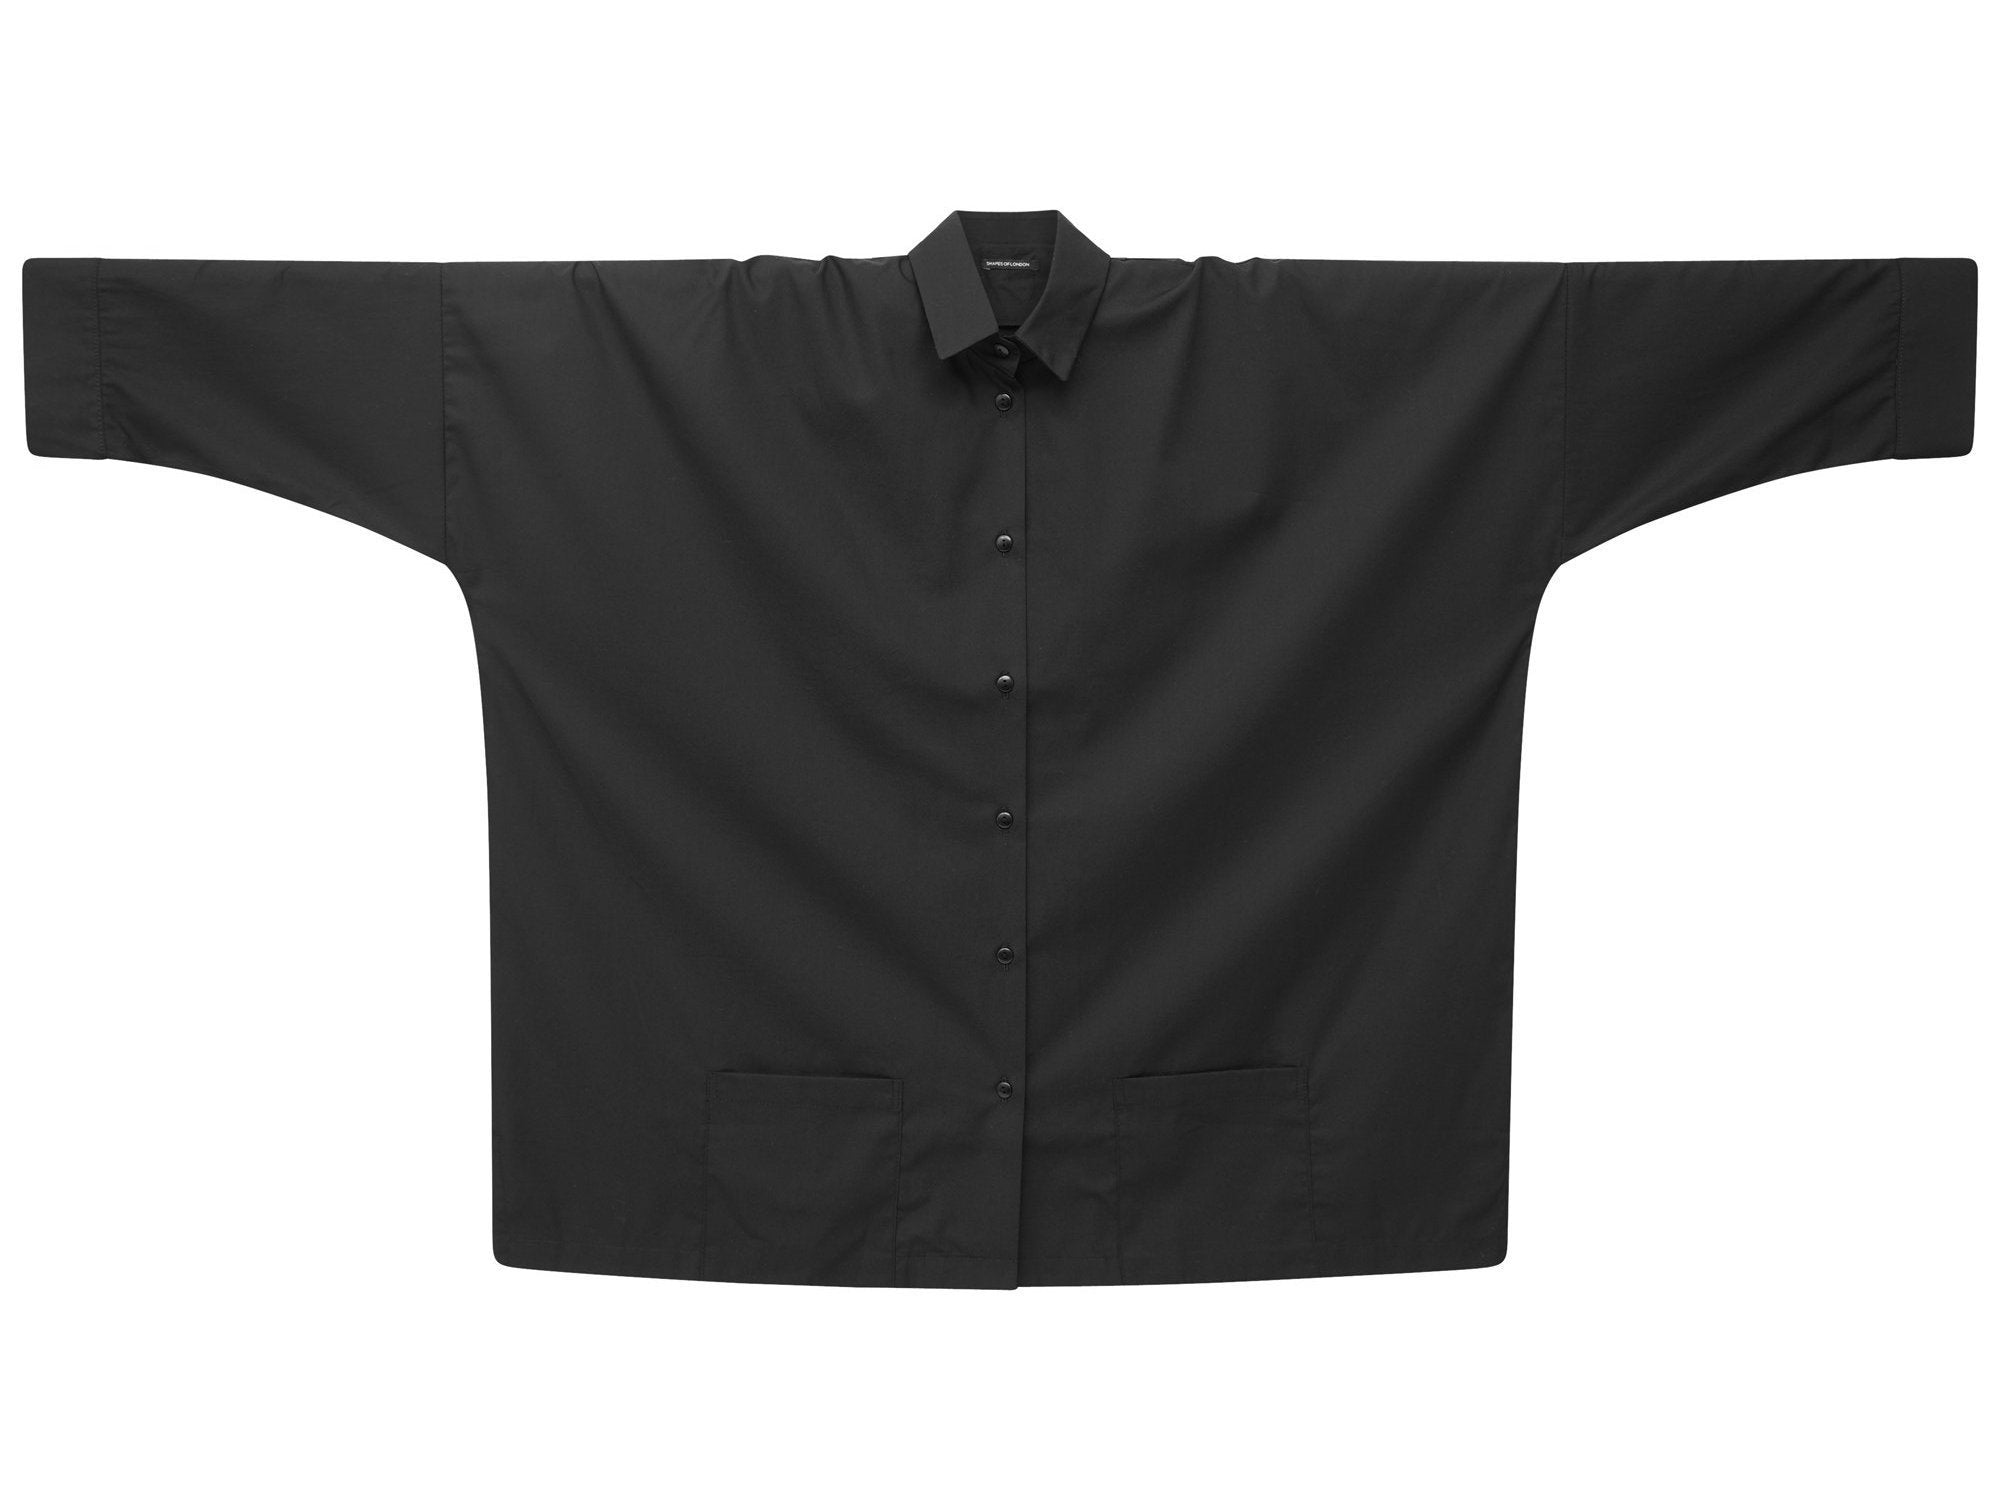 ARTISTIC PATCH POCKETS LONGER OVERSIZED SHIRT | ARTIST'S BLACK